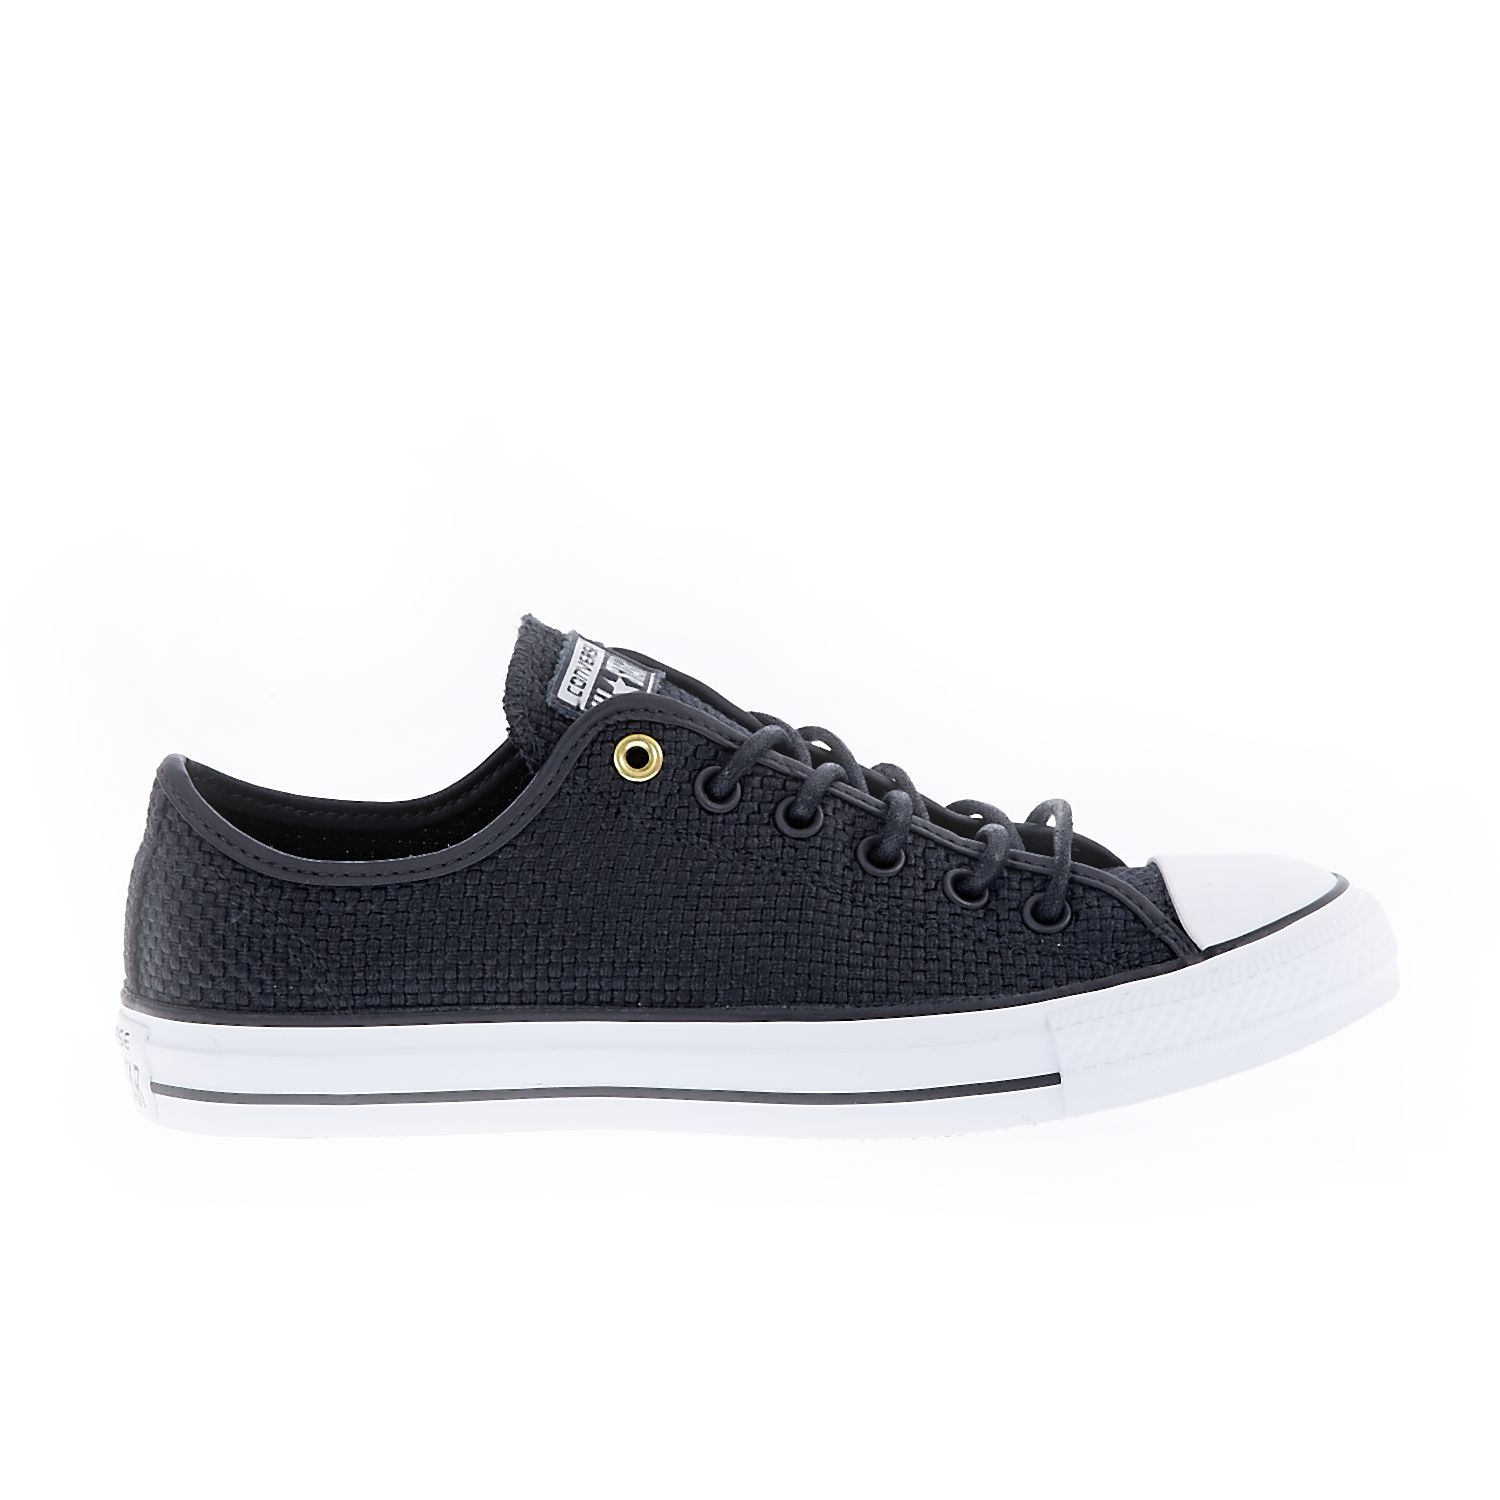 CONVERSE – Unisex παπούτσια Chuck Taylor All Star Ox μαύρα